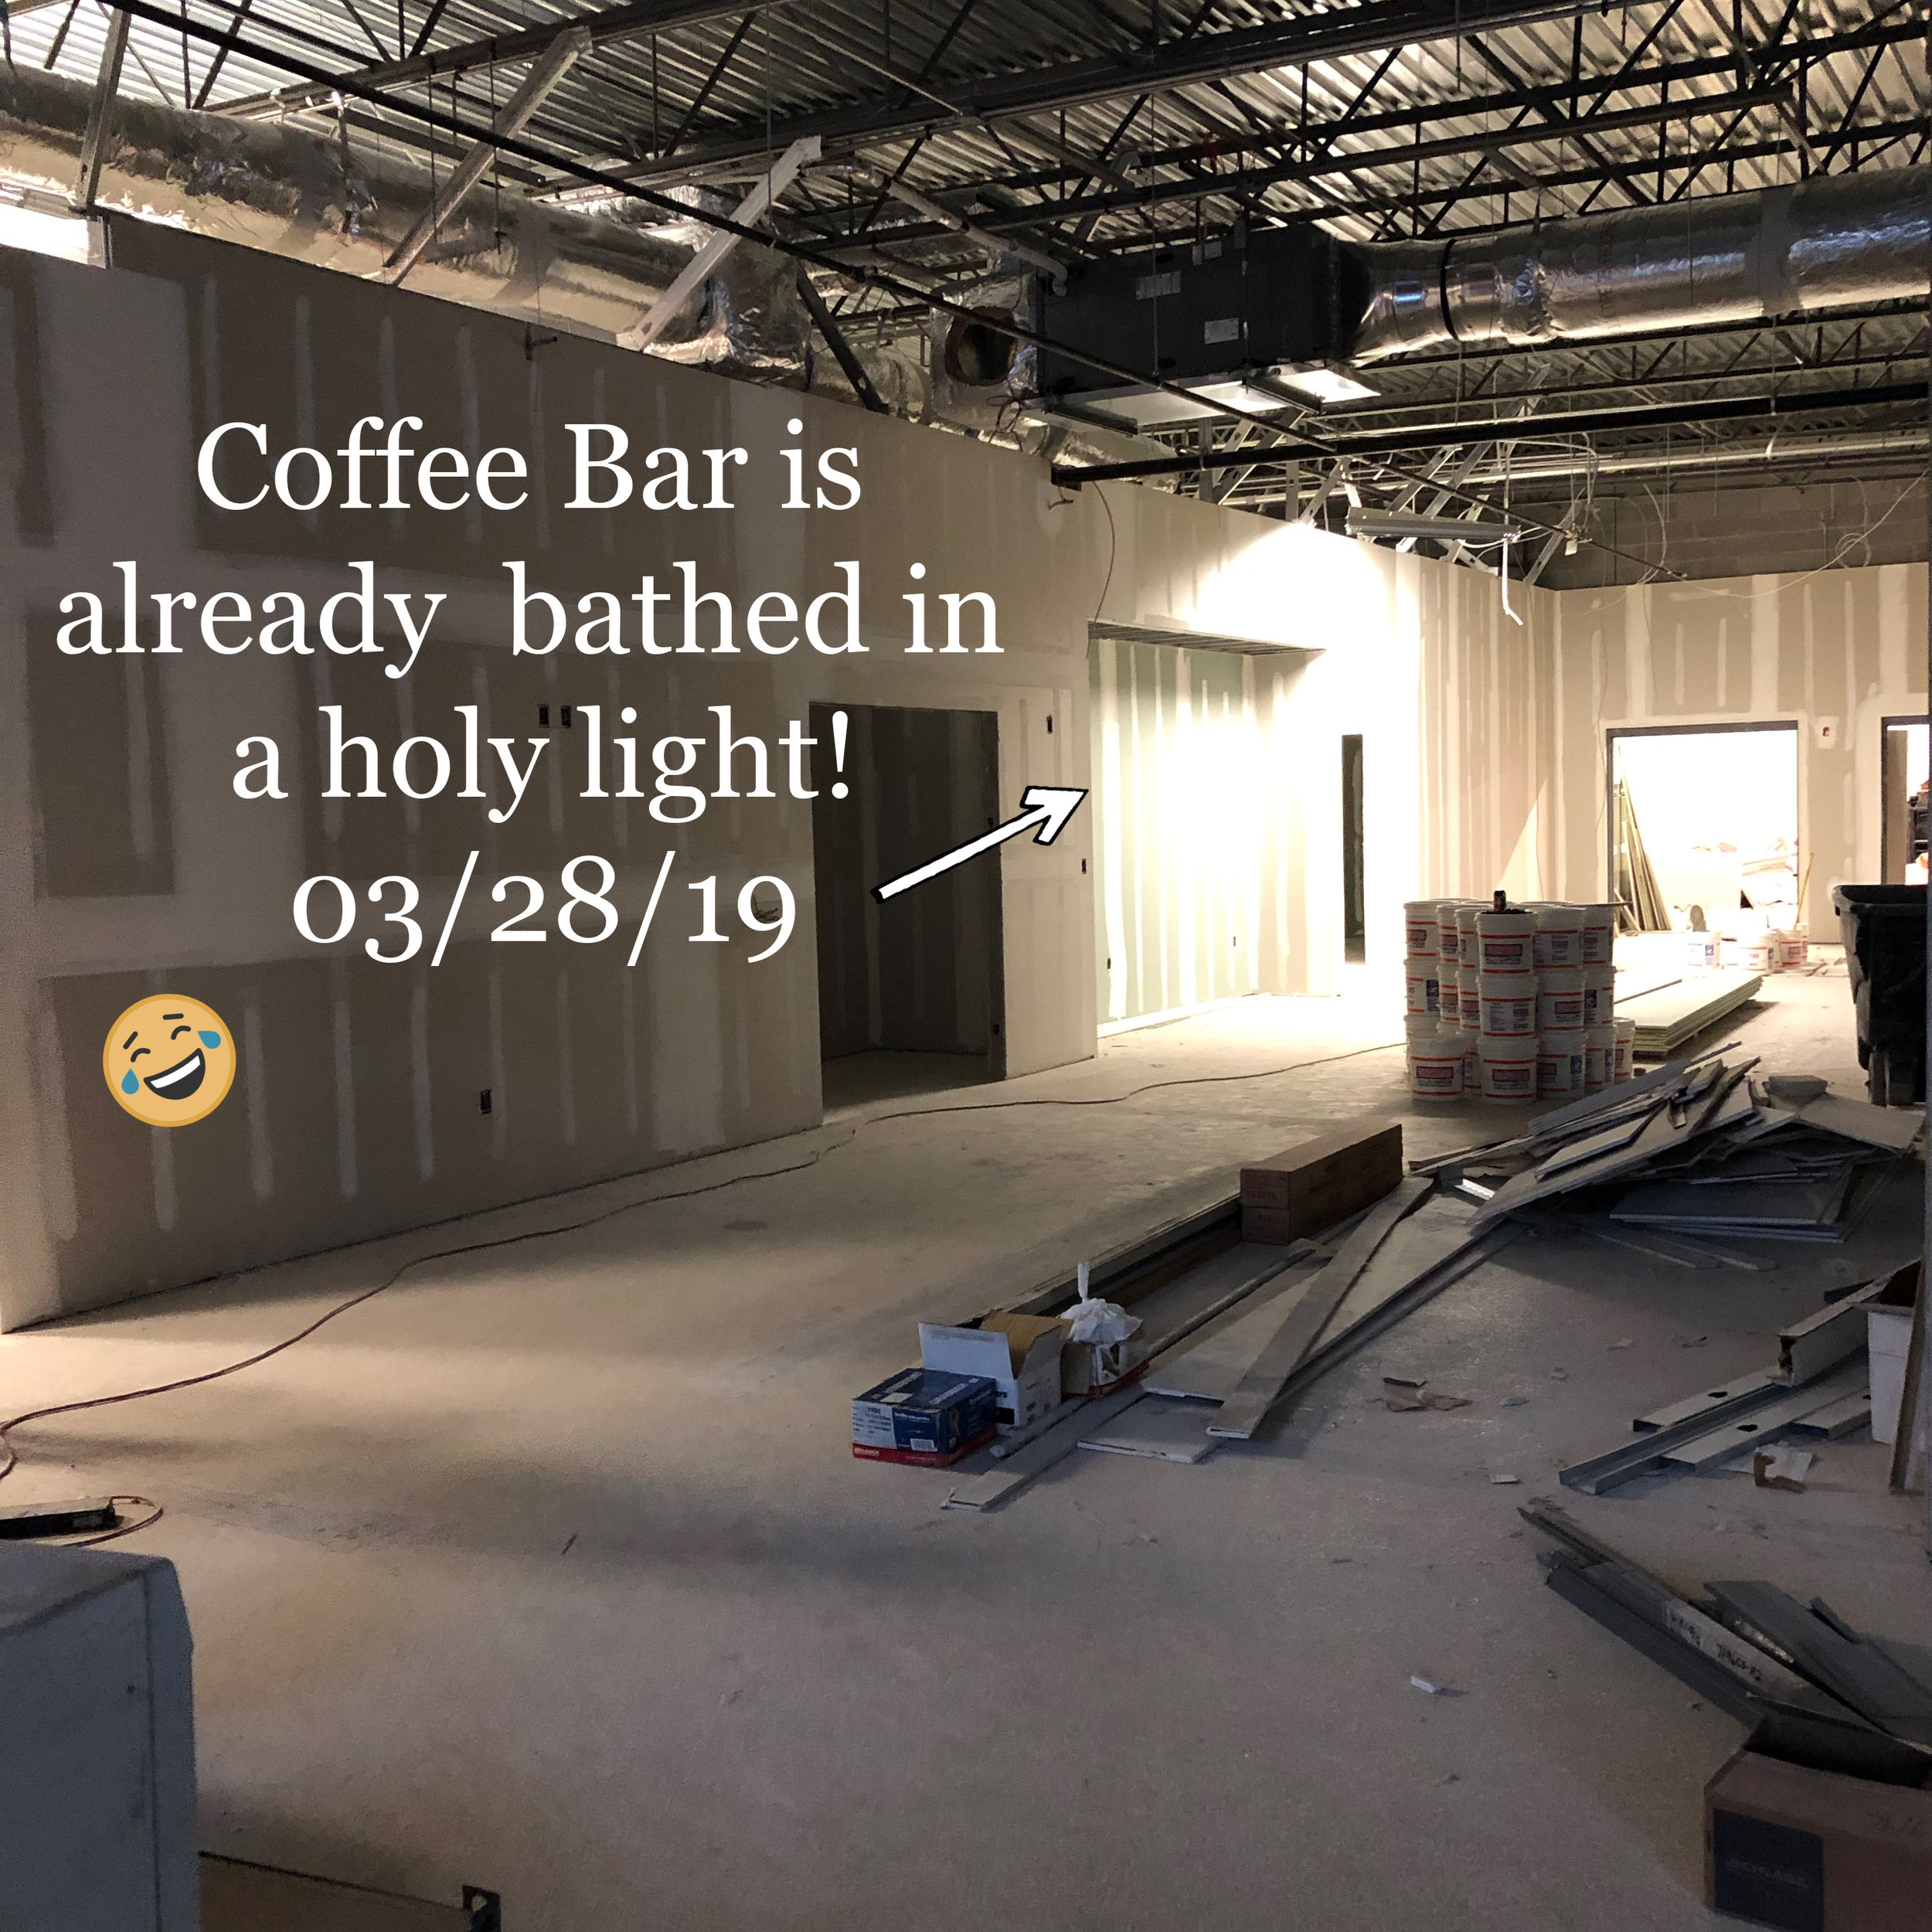 Lobby Coffee Bar - 03.28.19.jpg